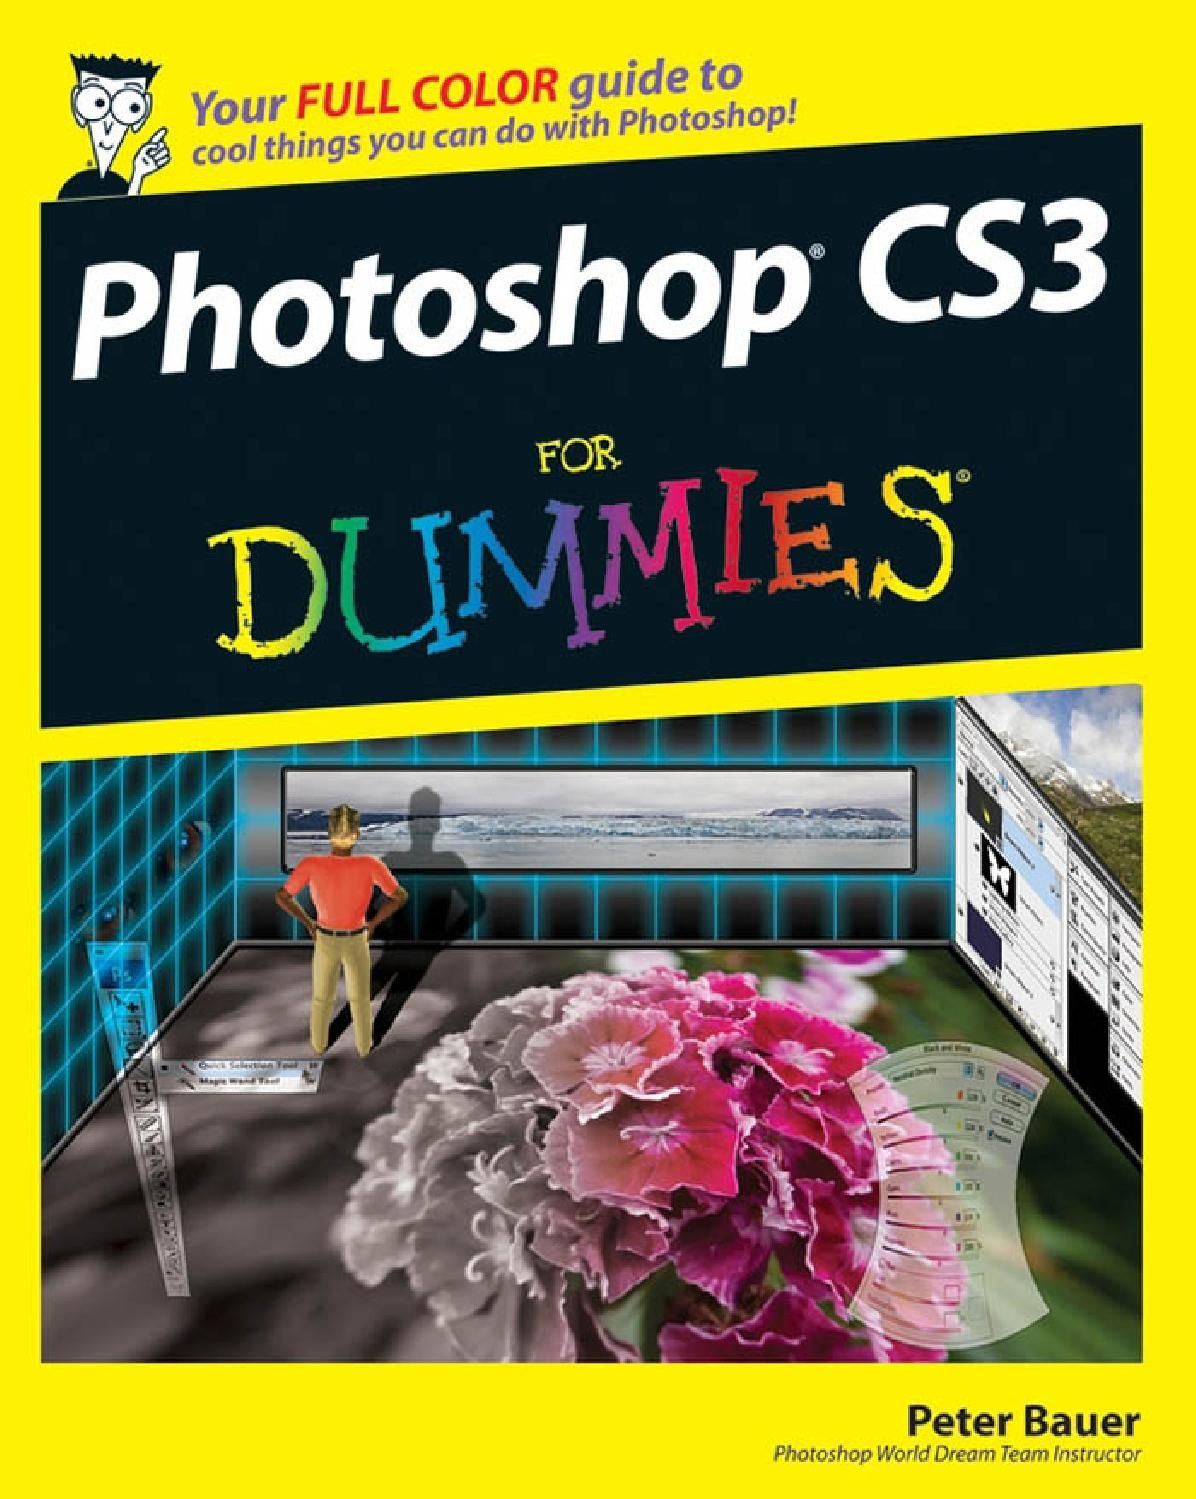 Adobe Photoshop Cs3 For Dummies Photoshop Cs3 For Dummies By Peter Bauer This Pdf Files Was Republish By Http Photoshop World Photoshop Photoshop Photography